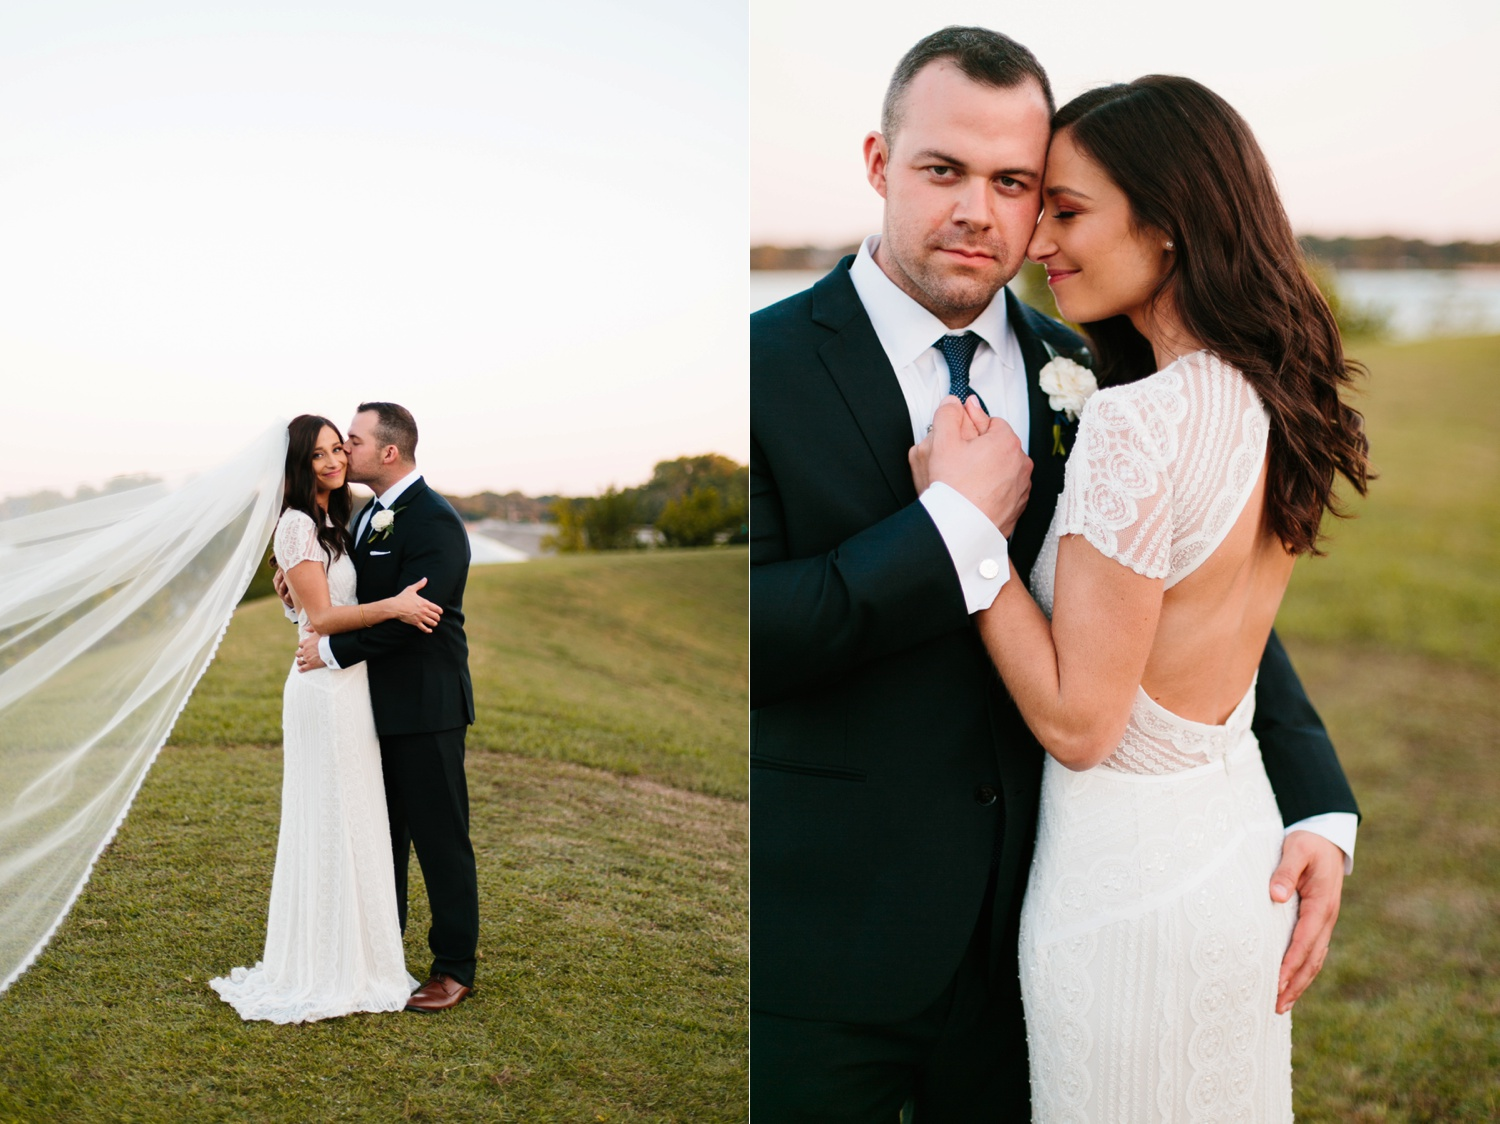 Kadee + Tyler | a raw, emotional wedding at the Filter Building on White Rock Lake in Dallas, TX by North Texas Wedding Photographer, Rachel Meagan Photography 175